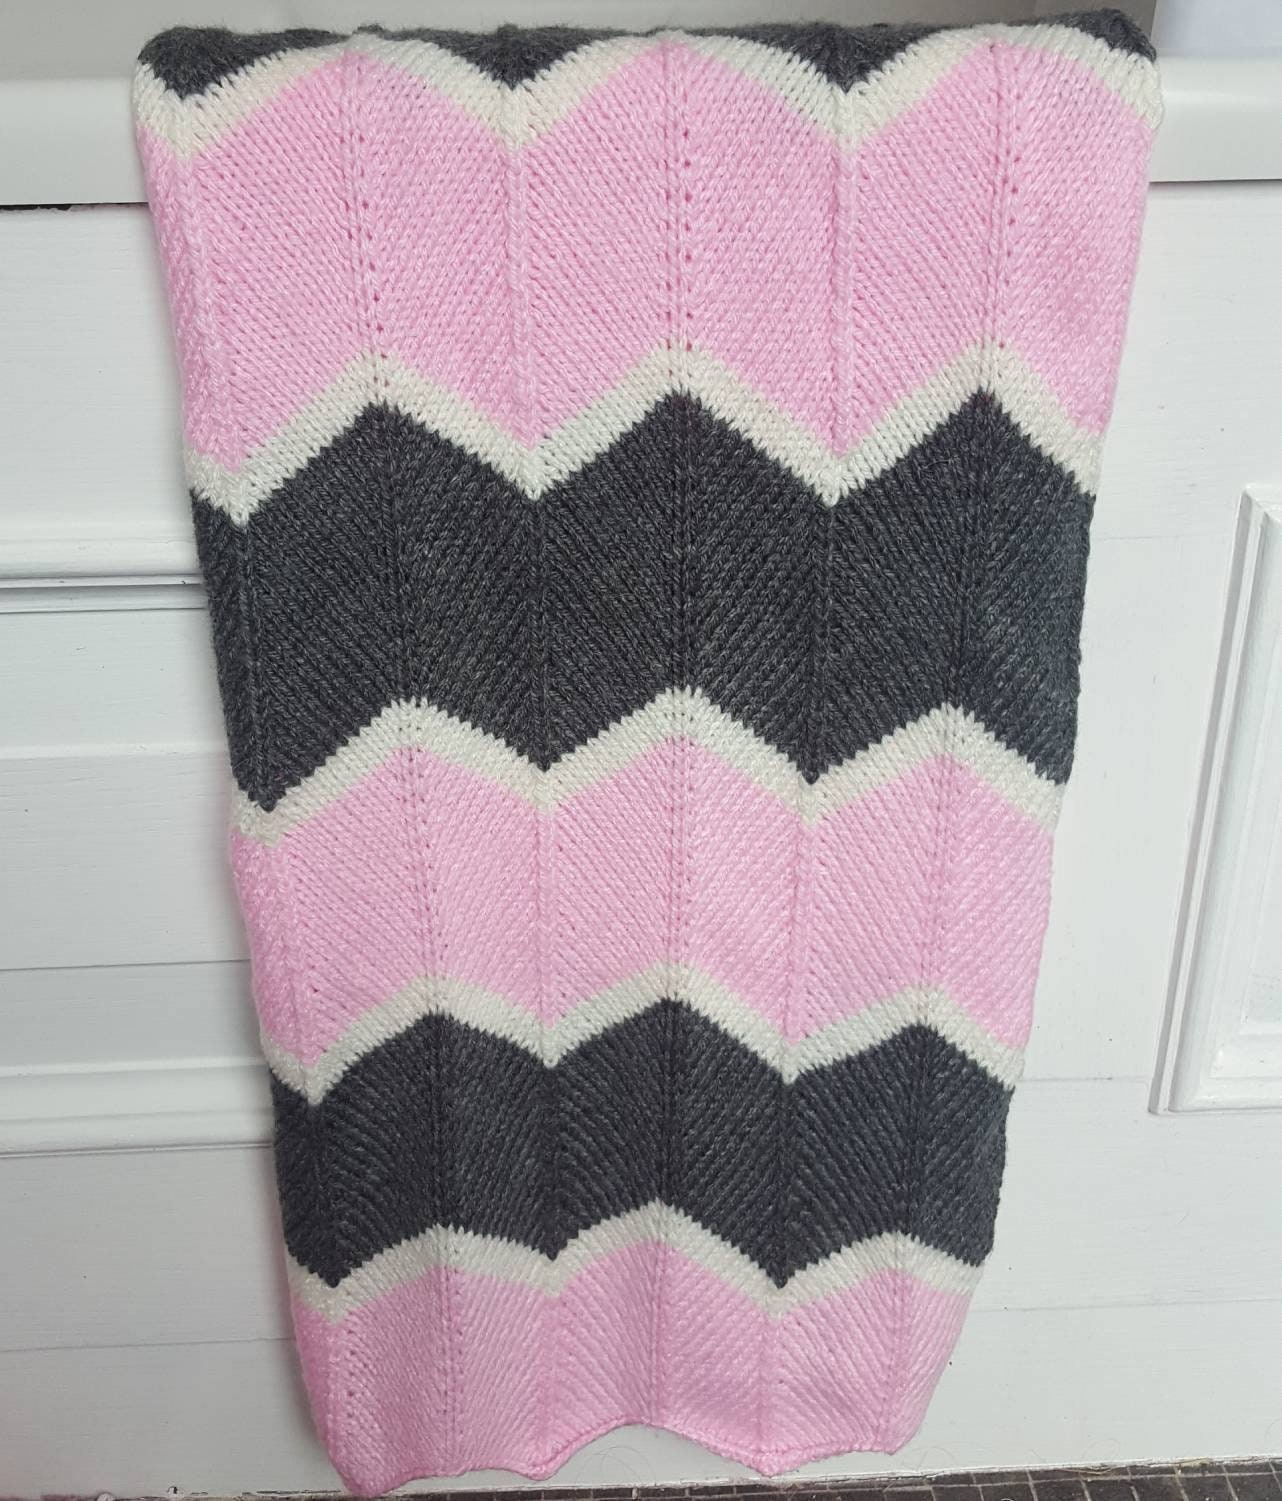 6657800a8c0 Hand knitted baby blanket